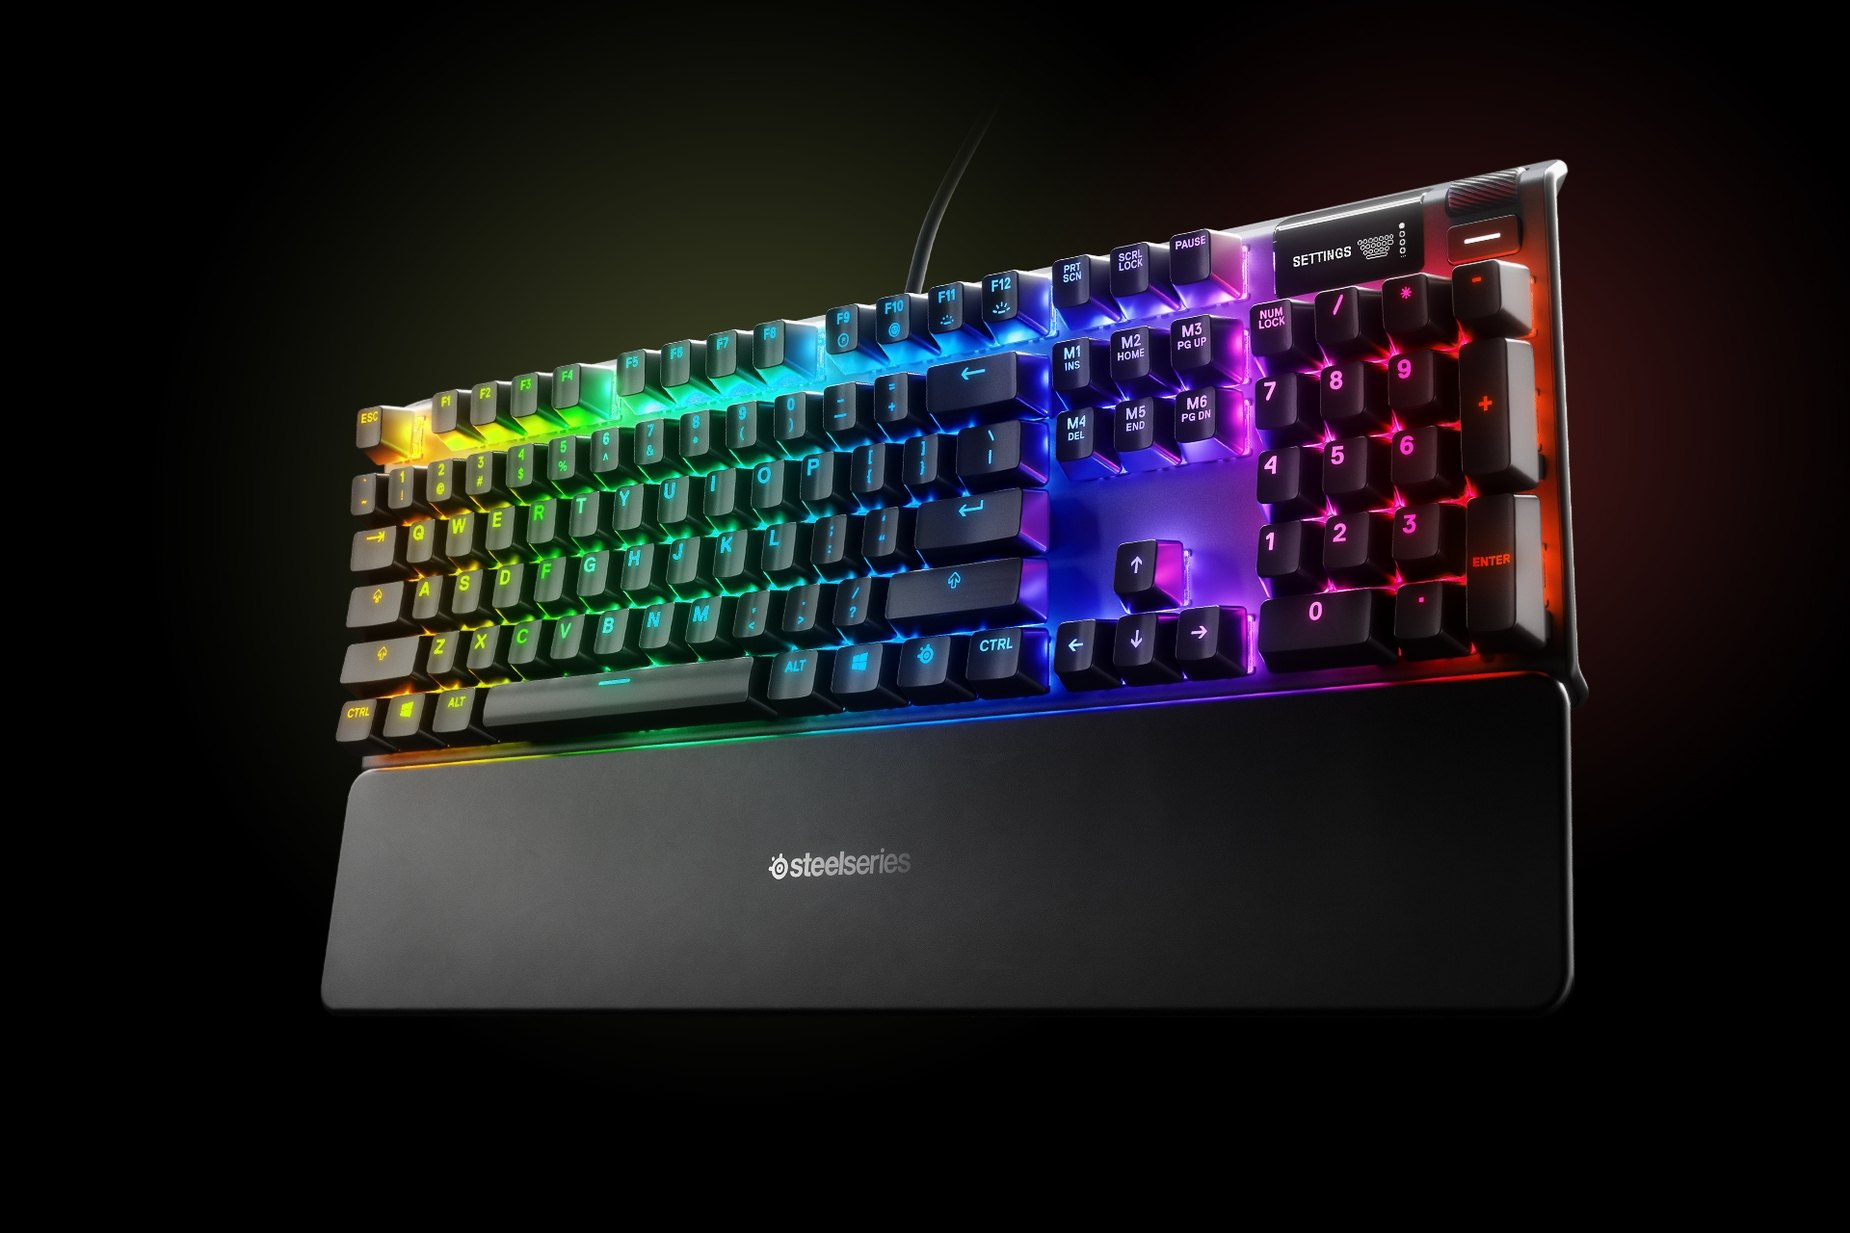 Russian - Apex 7 (Red Switch) gaming keyboard with the illumination lit up on dark background, also shows the OLED screen and controls used to change settings and adjust audio